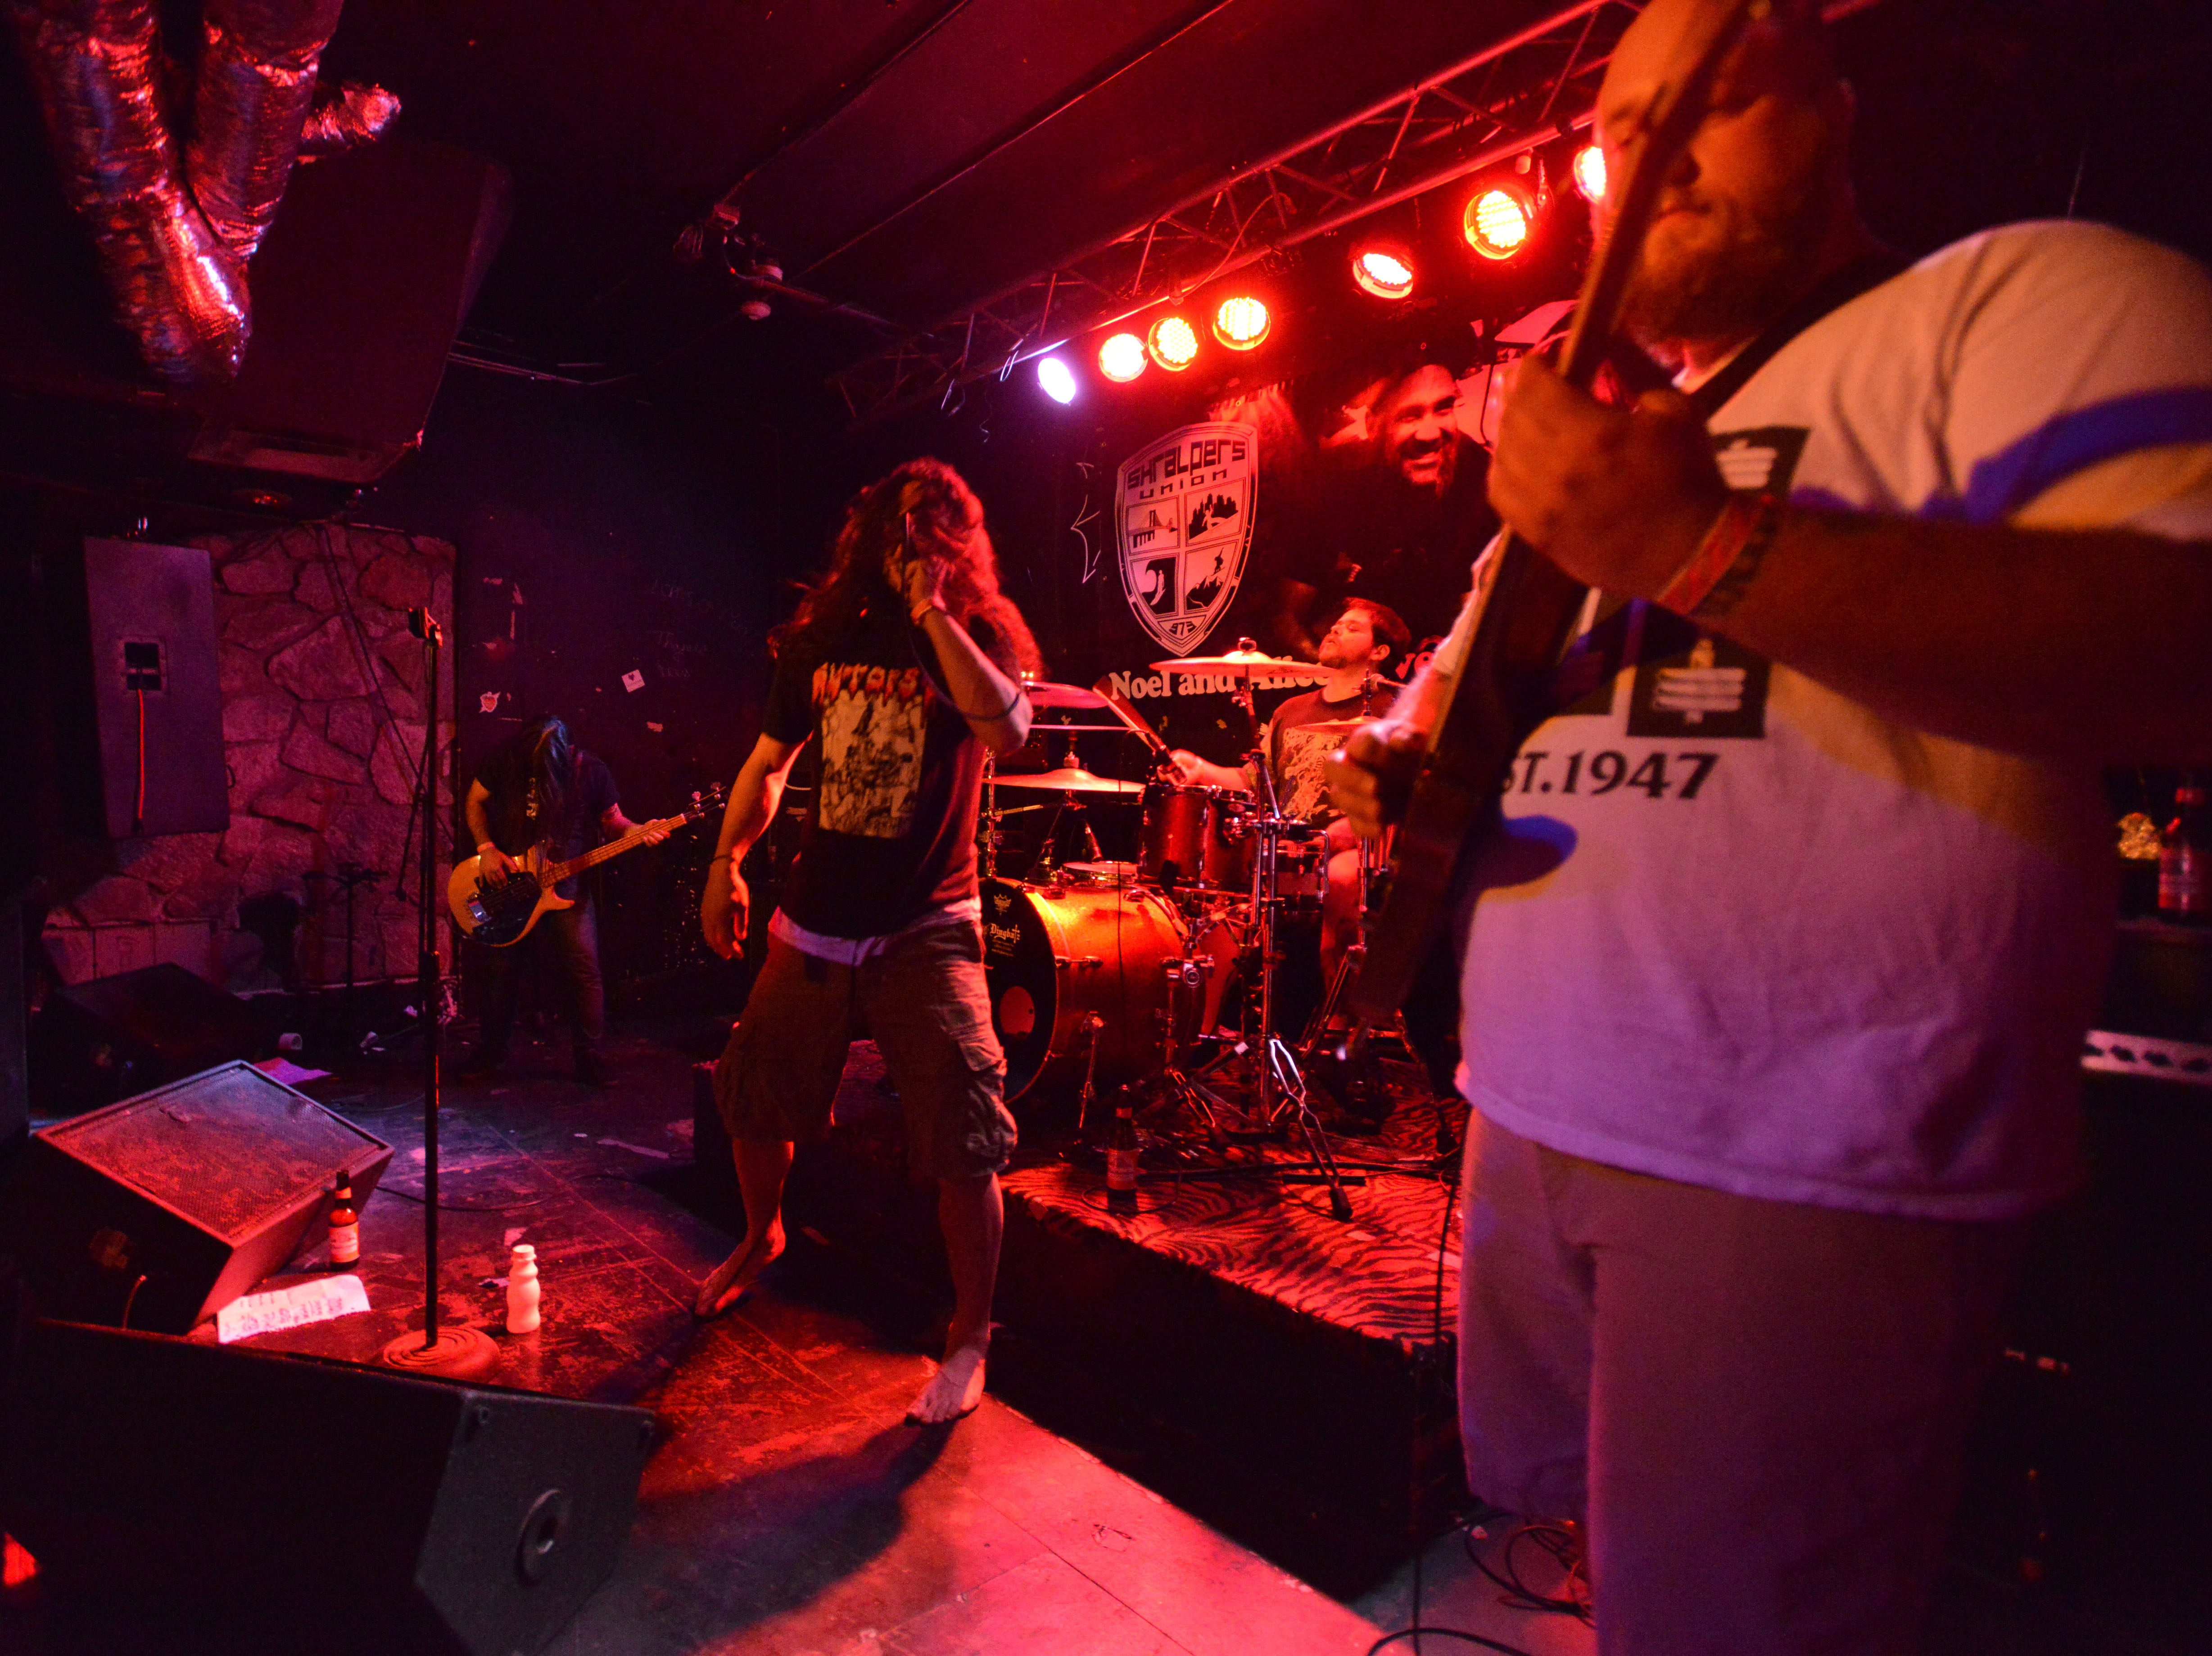 Chained to the Dead playing at the Noel Korman and Alice Park benefit at Dingbatz Bar in Clifton in 2015. On Saturday Dec. 6, 2015 Korman and his girlfriend Park tragically lost their lives in Passaic. Noel was an inspirational human being who organized skateboarding events around the country with his skate/surf/snowboard collective.